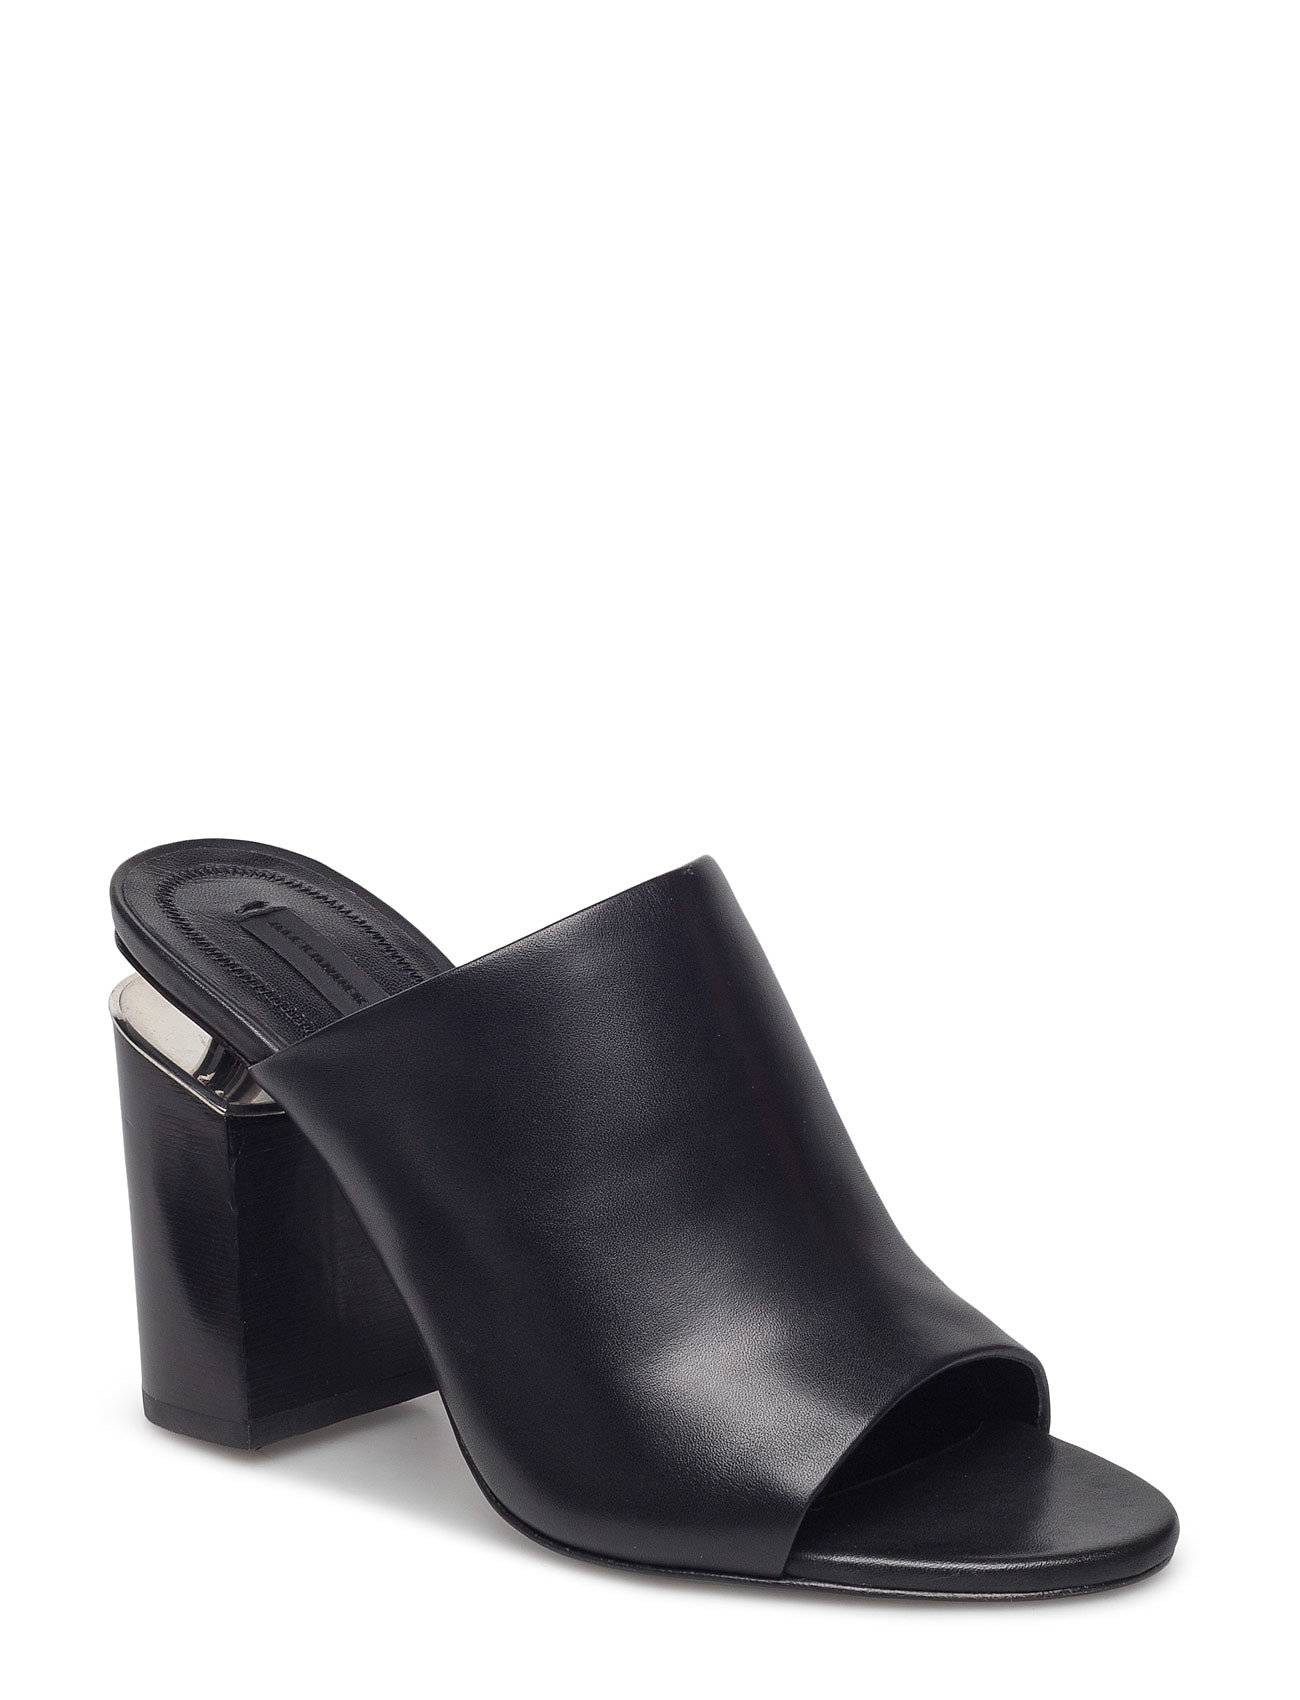 Alexander Wang Avery Black Calf